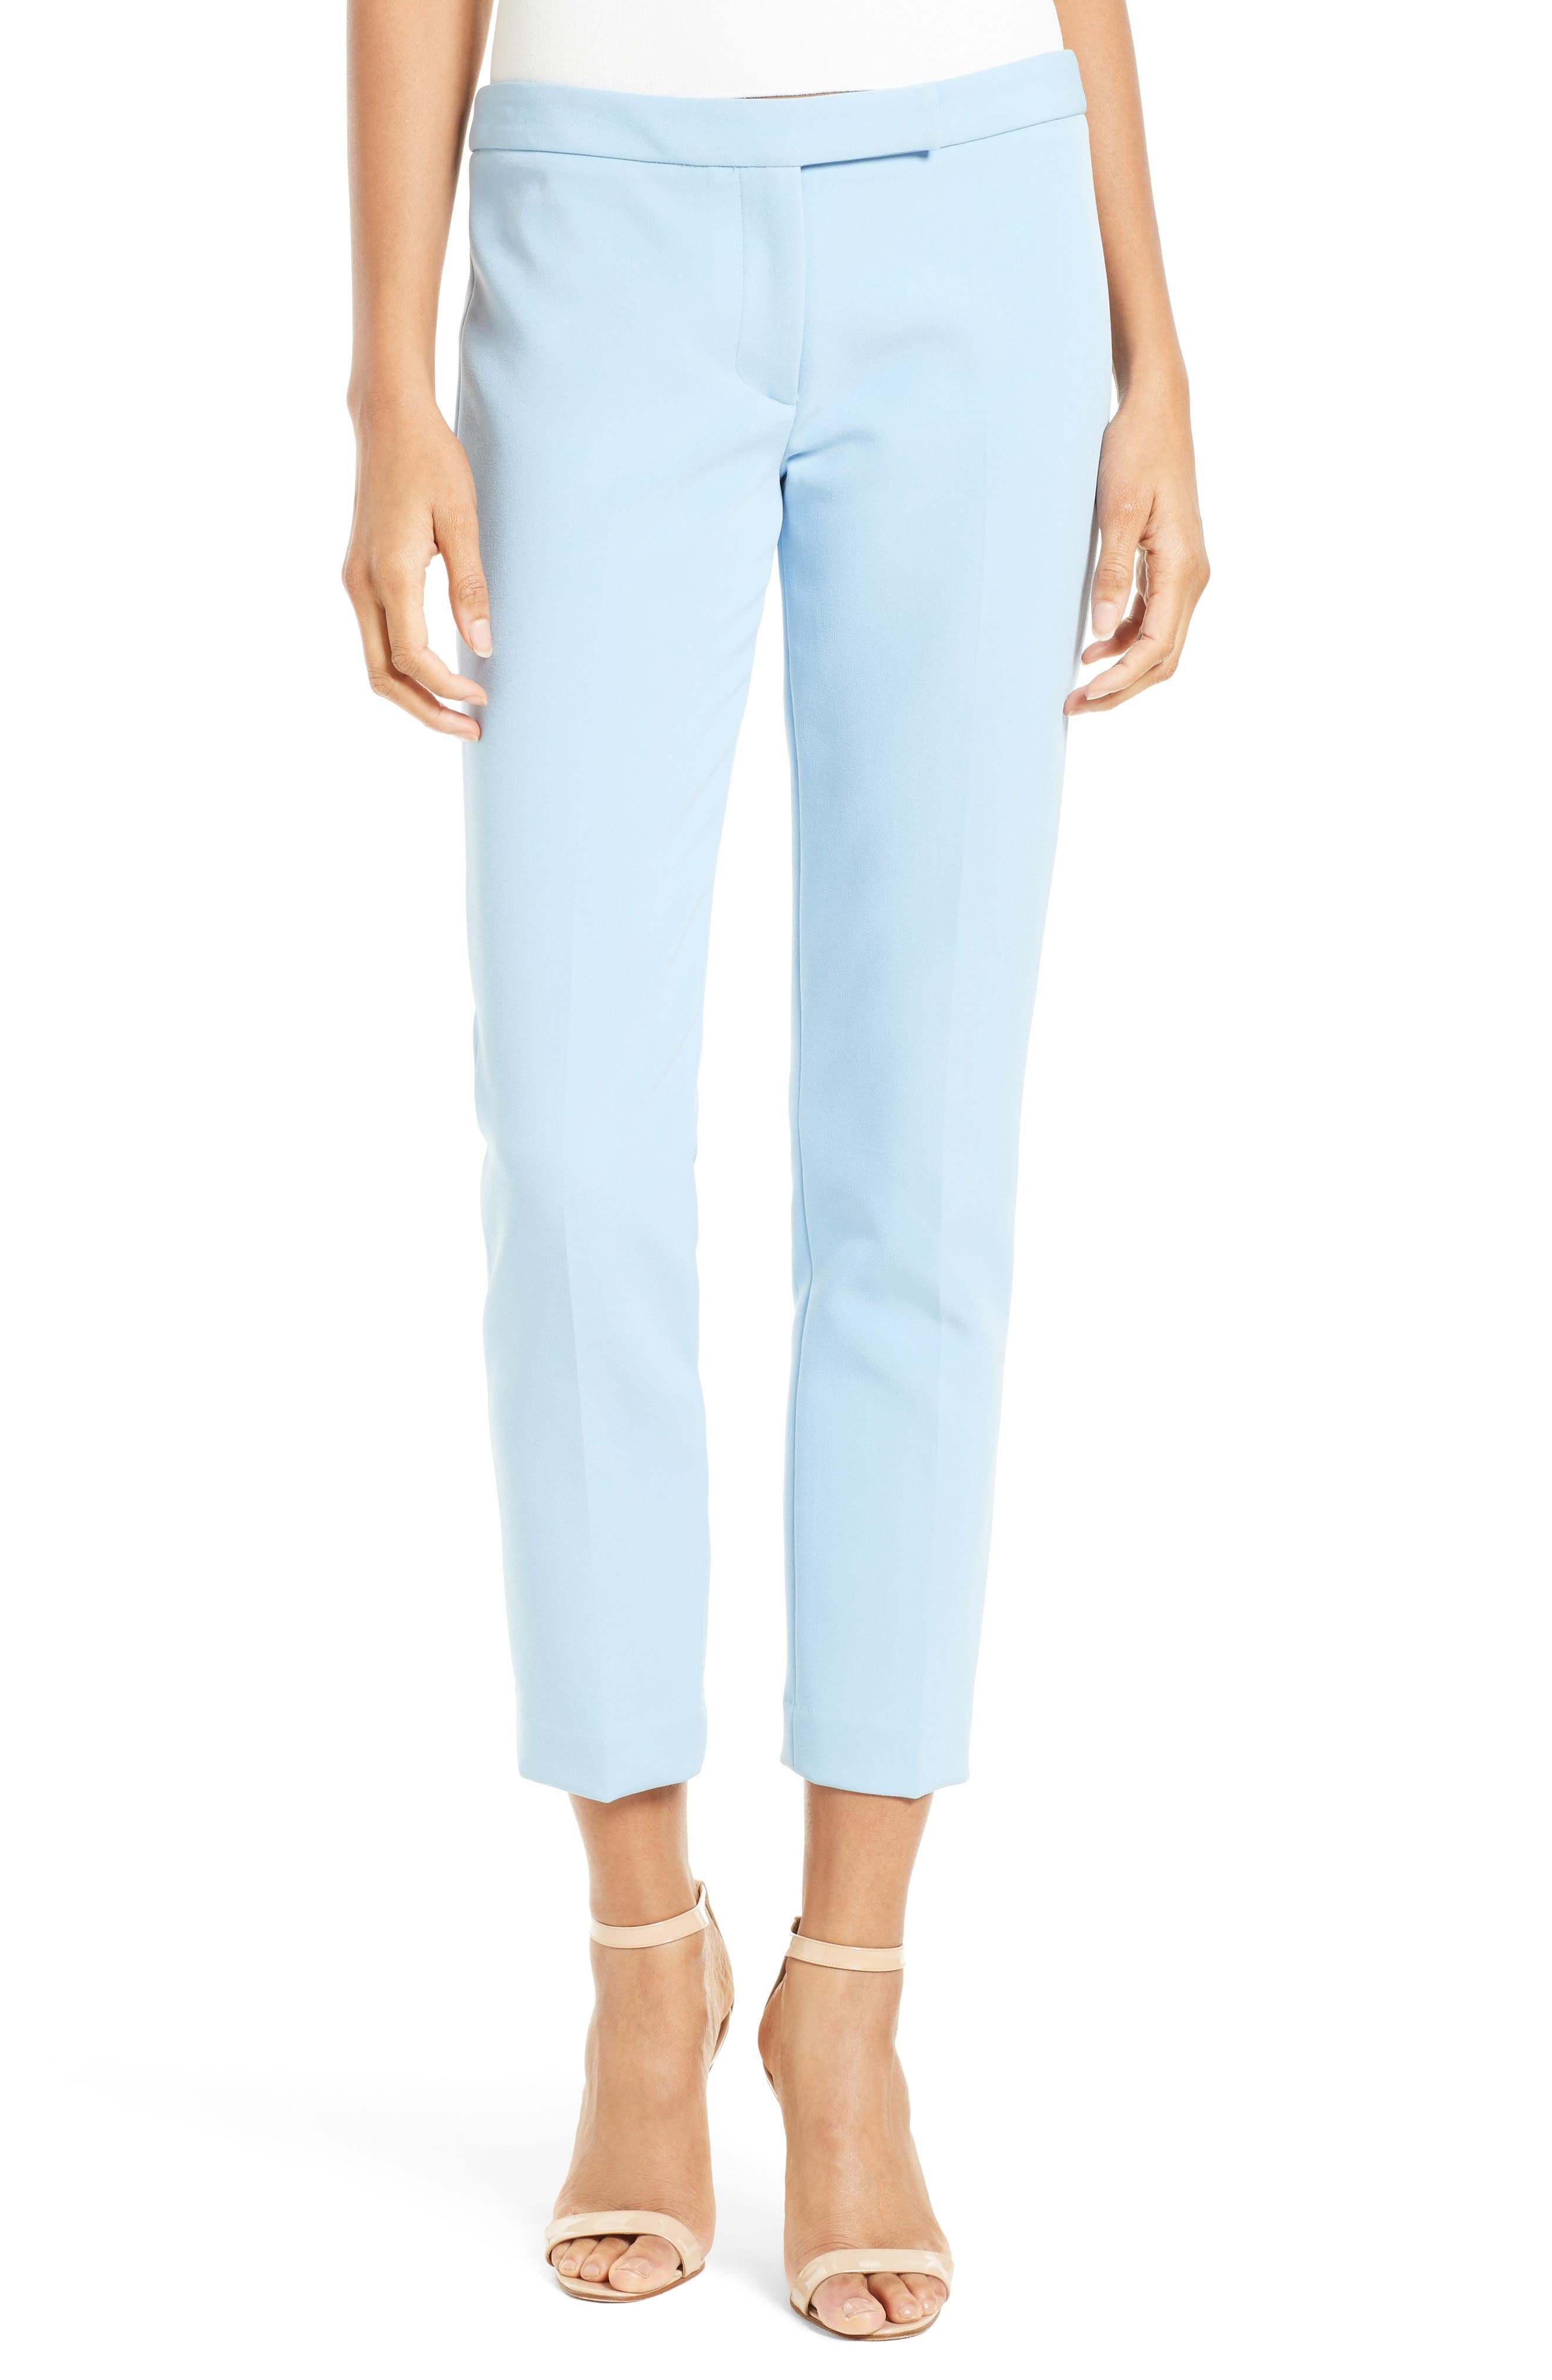 Alternate Image 1 Selected - Milly Stretch Crepe Cigarette Pant